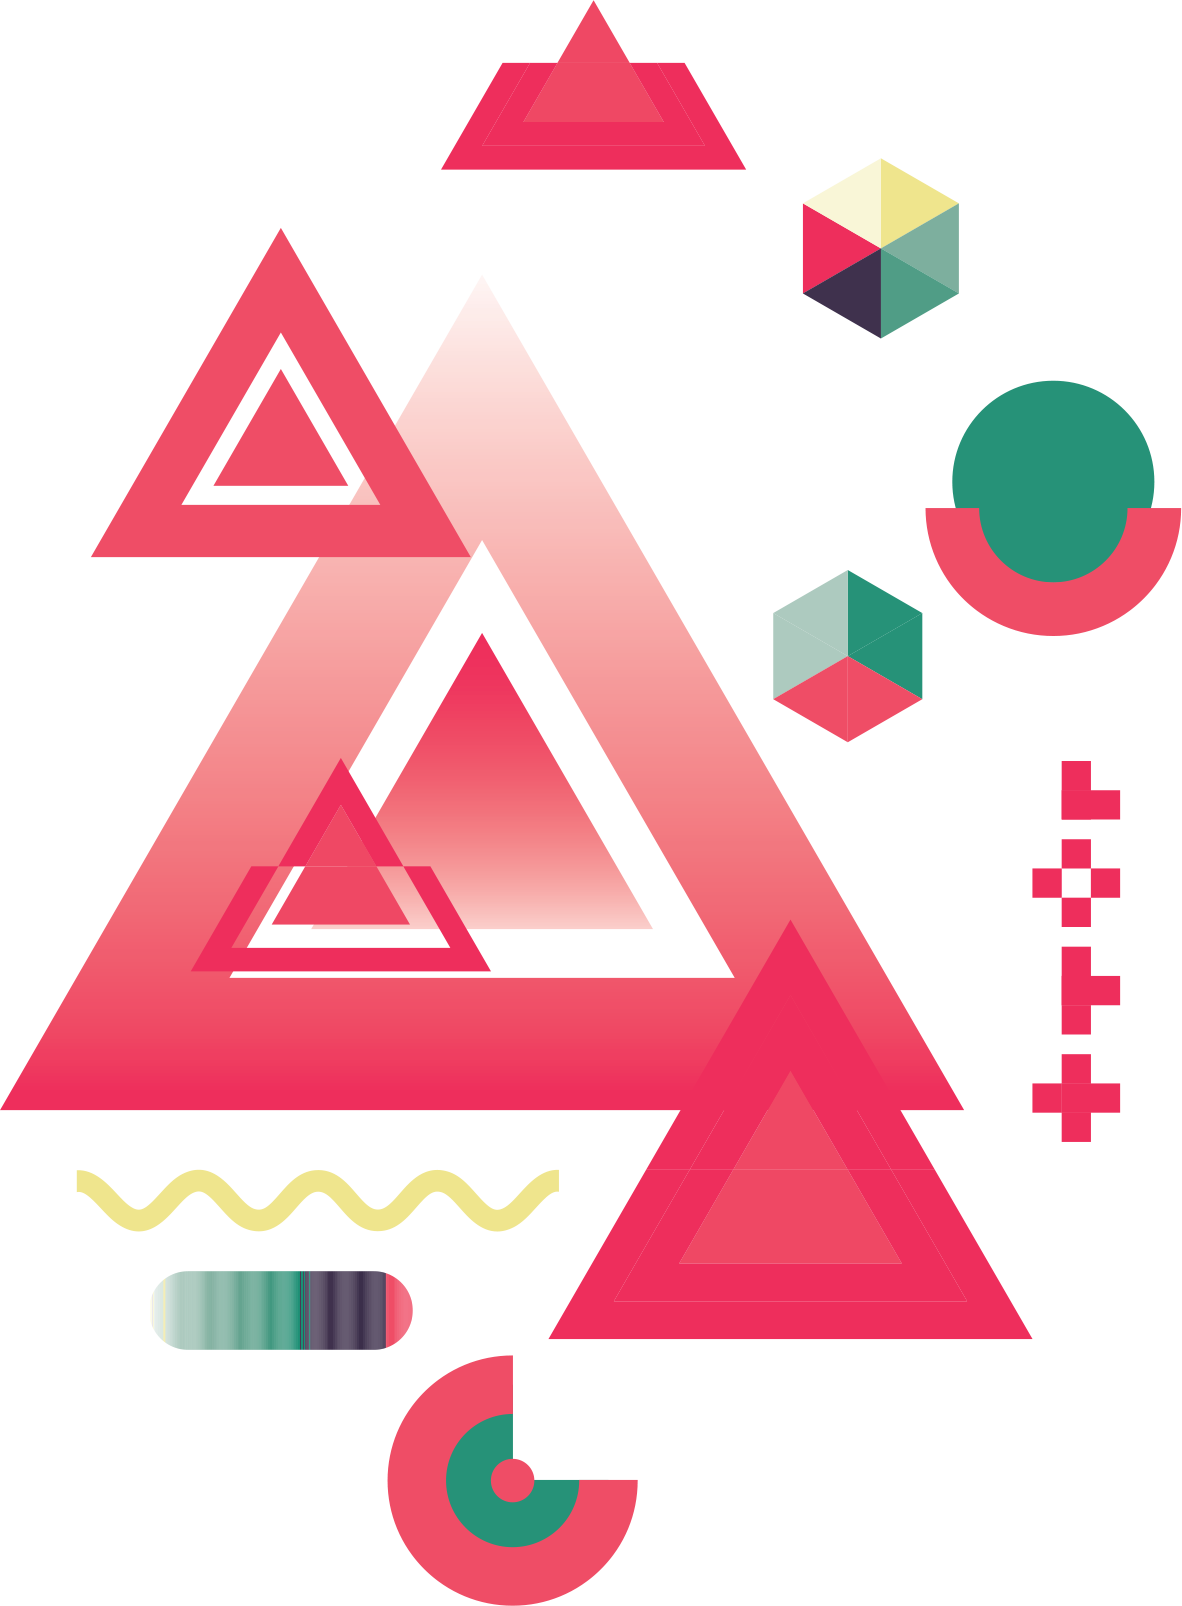 Geometry abstraction poster abstract. Triangular clipart geometric shape